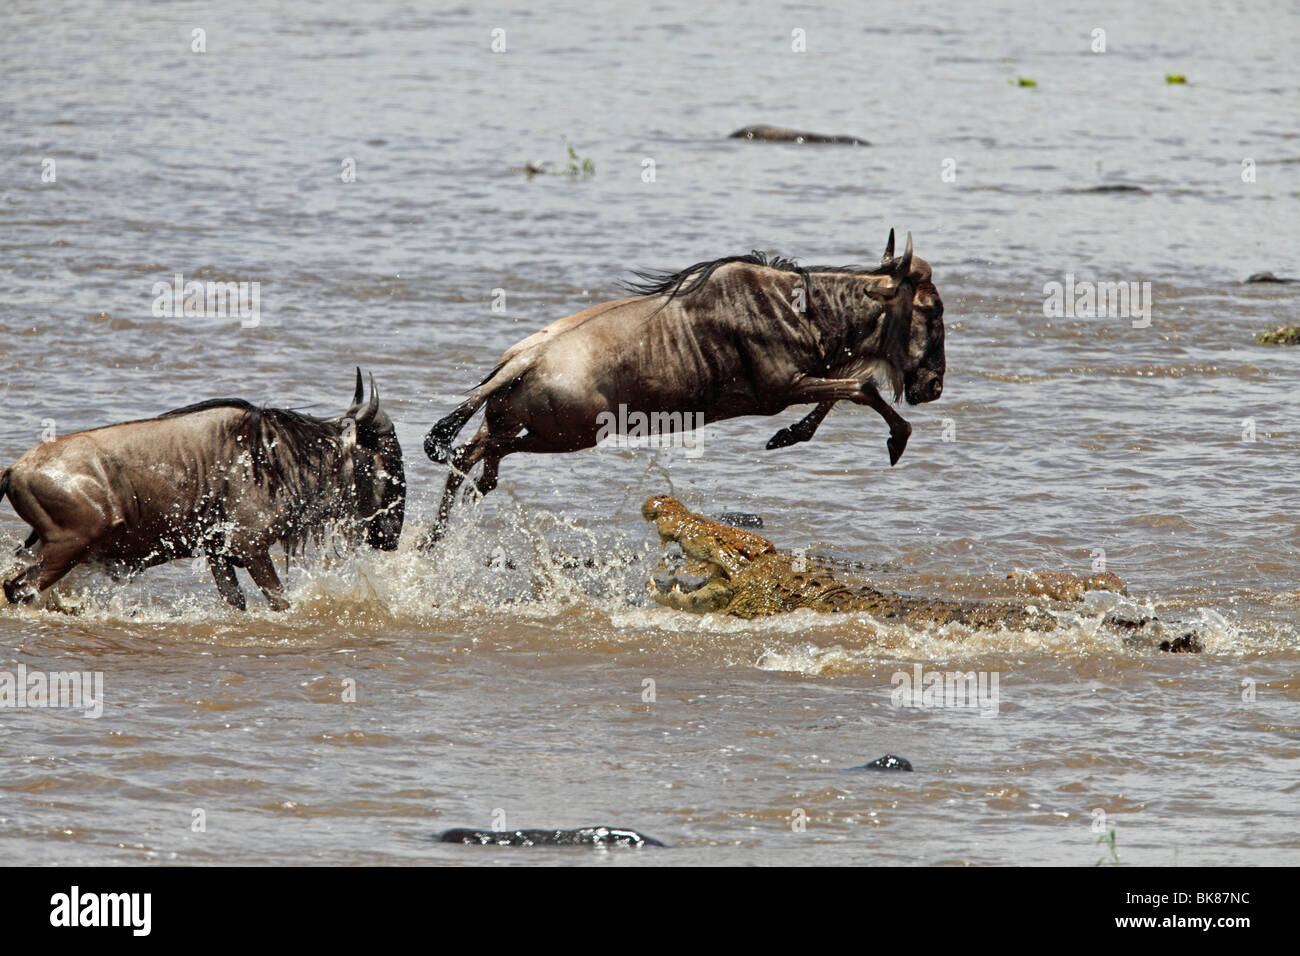 Blue Wildebeest (Connochaetes taurinus) being hunted by a Crocodile (Crocodilia) - Stock Image